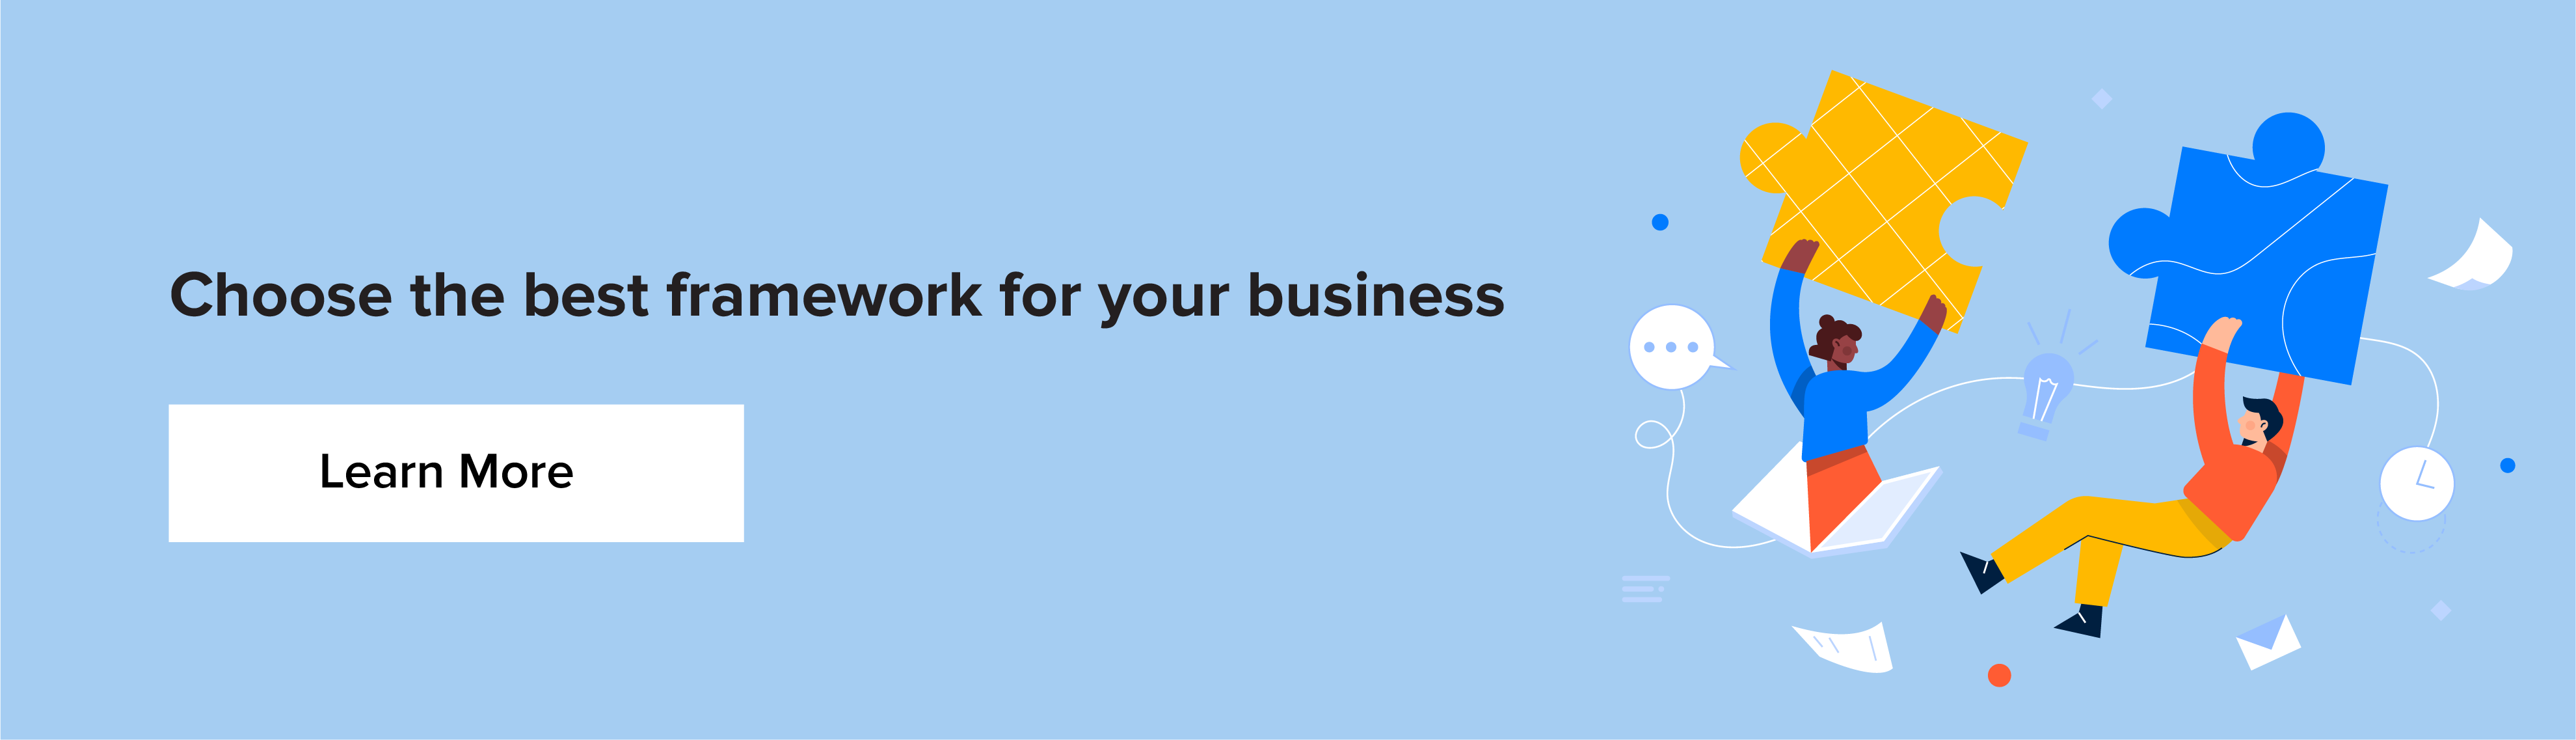 Framework for your business